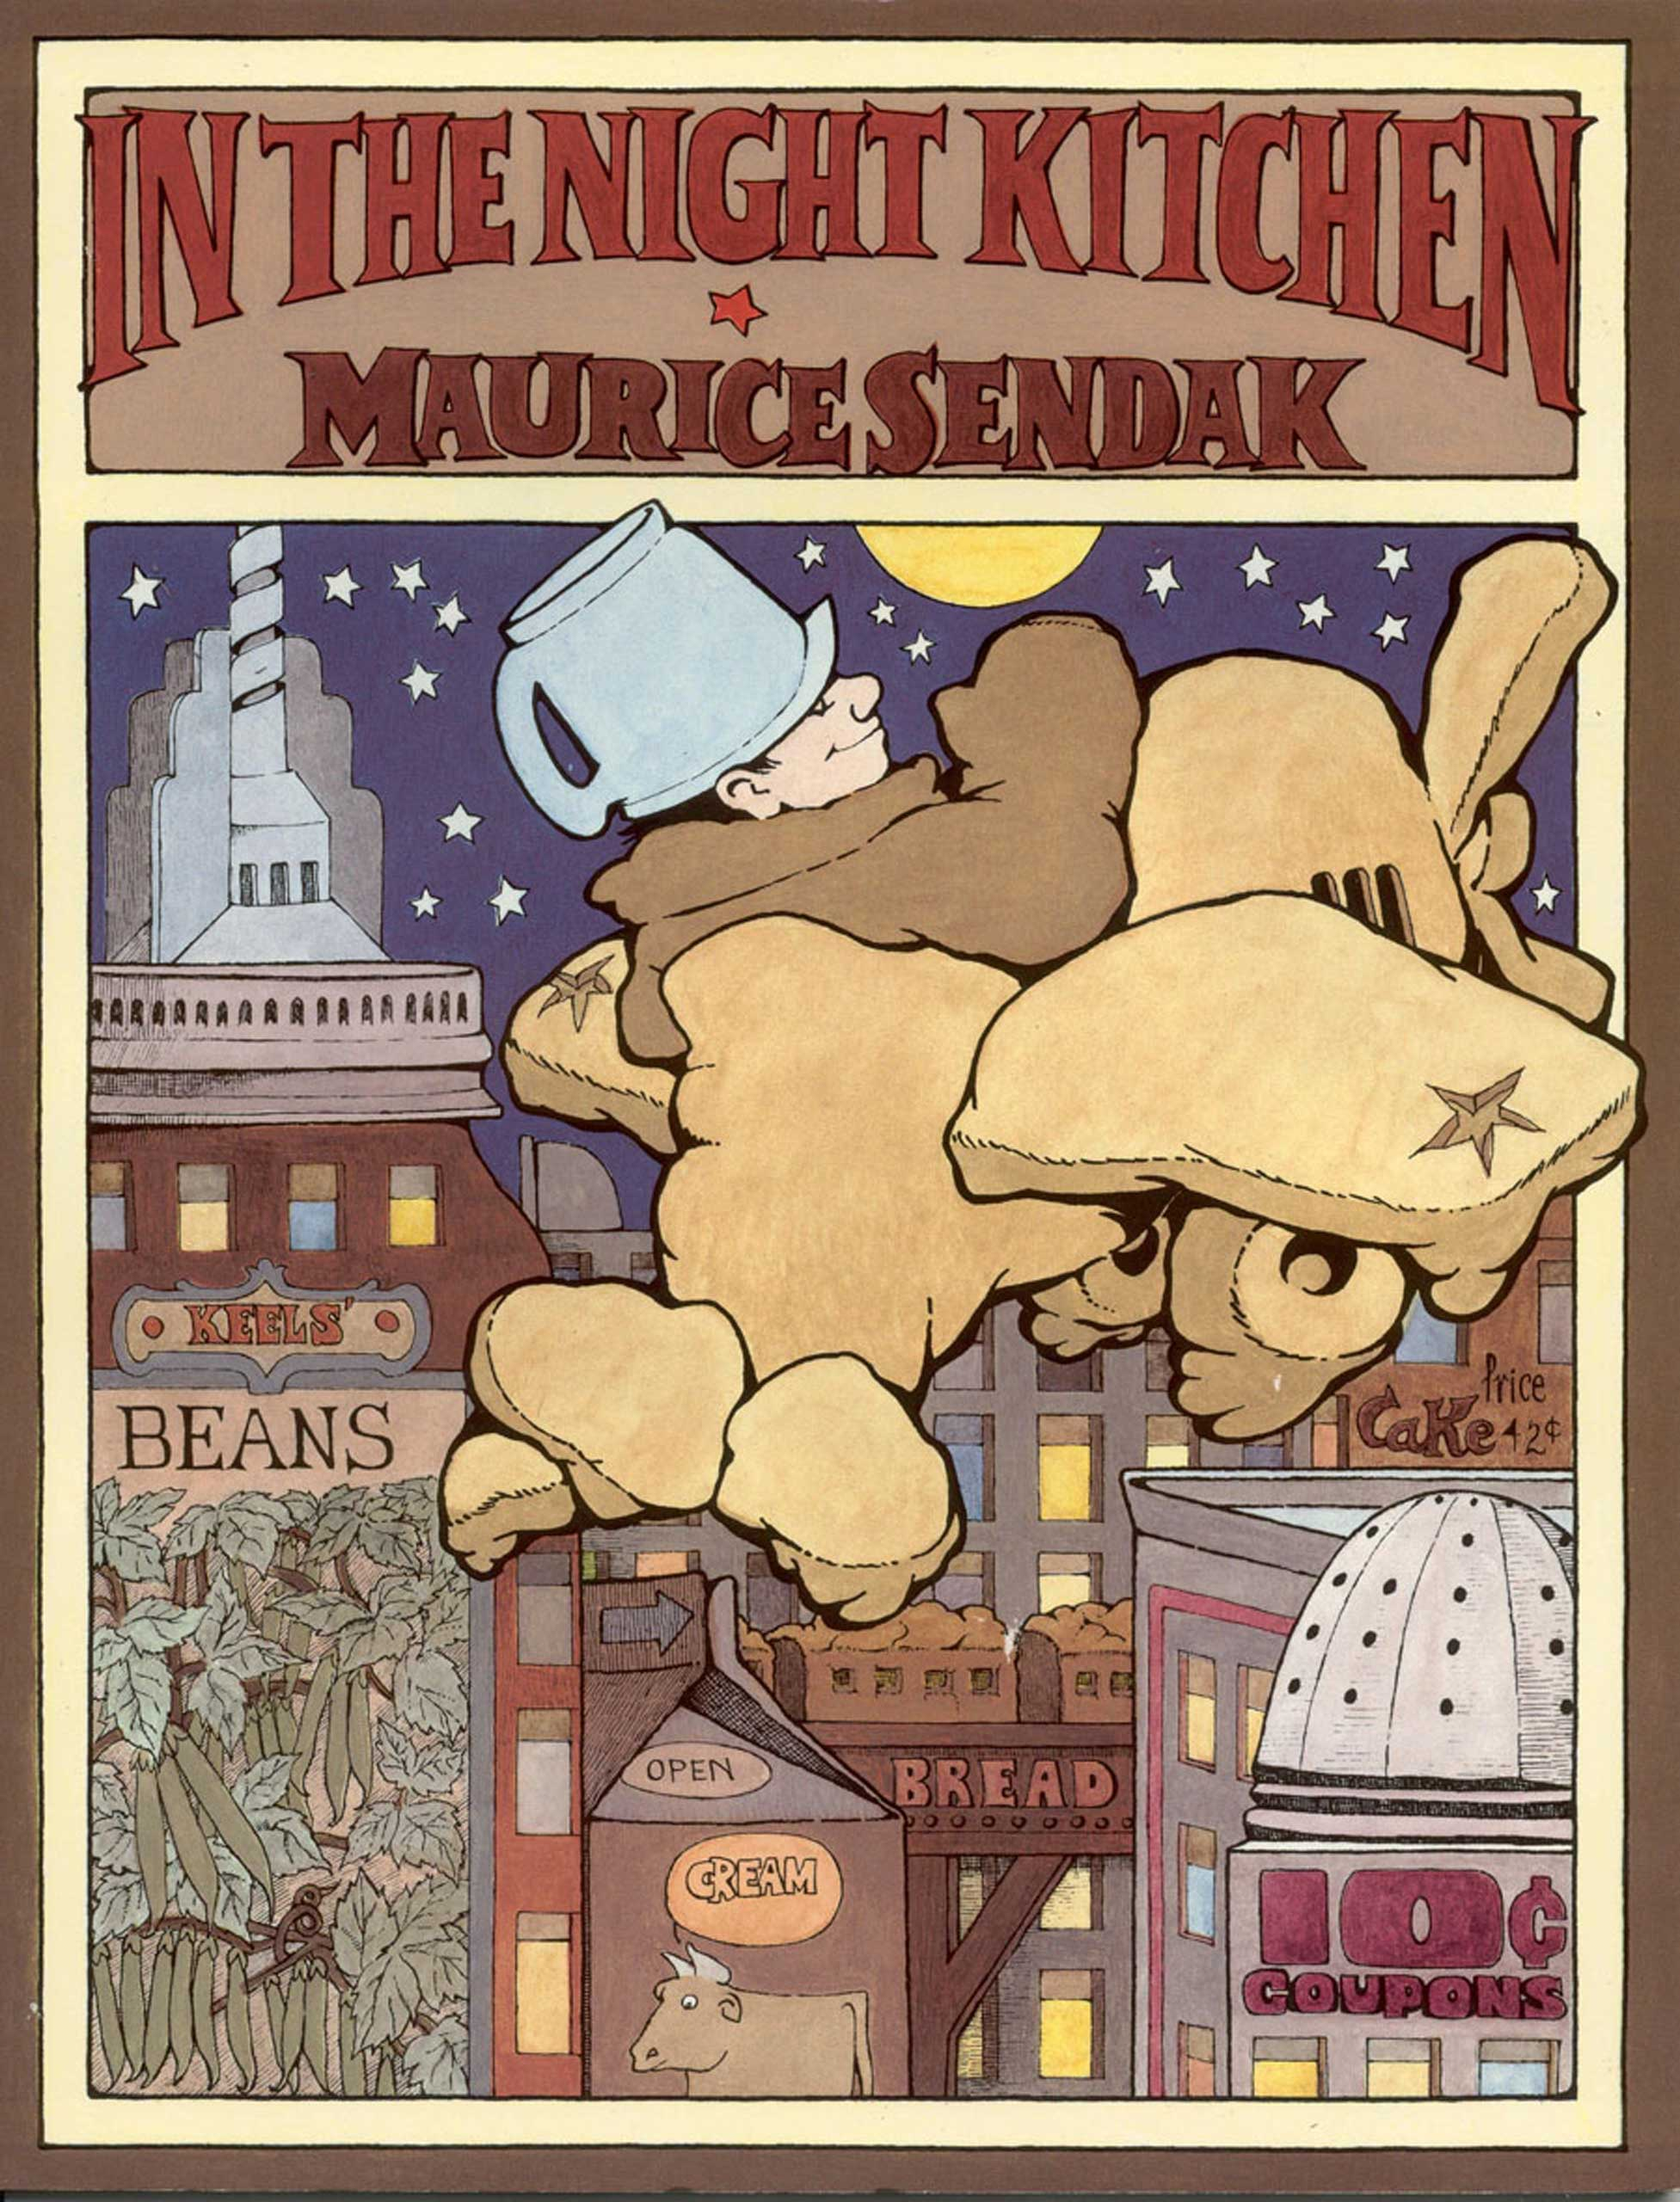 In the Night Kitchen, by Maurice Sendak.                                                                                                                            A child drifts through a dream world where bakers are preparing a tasty cake.                                                                                                                            Buy now: In the Night Kitchen